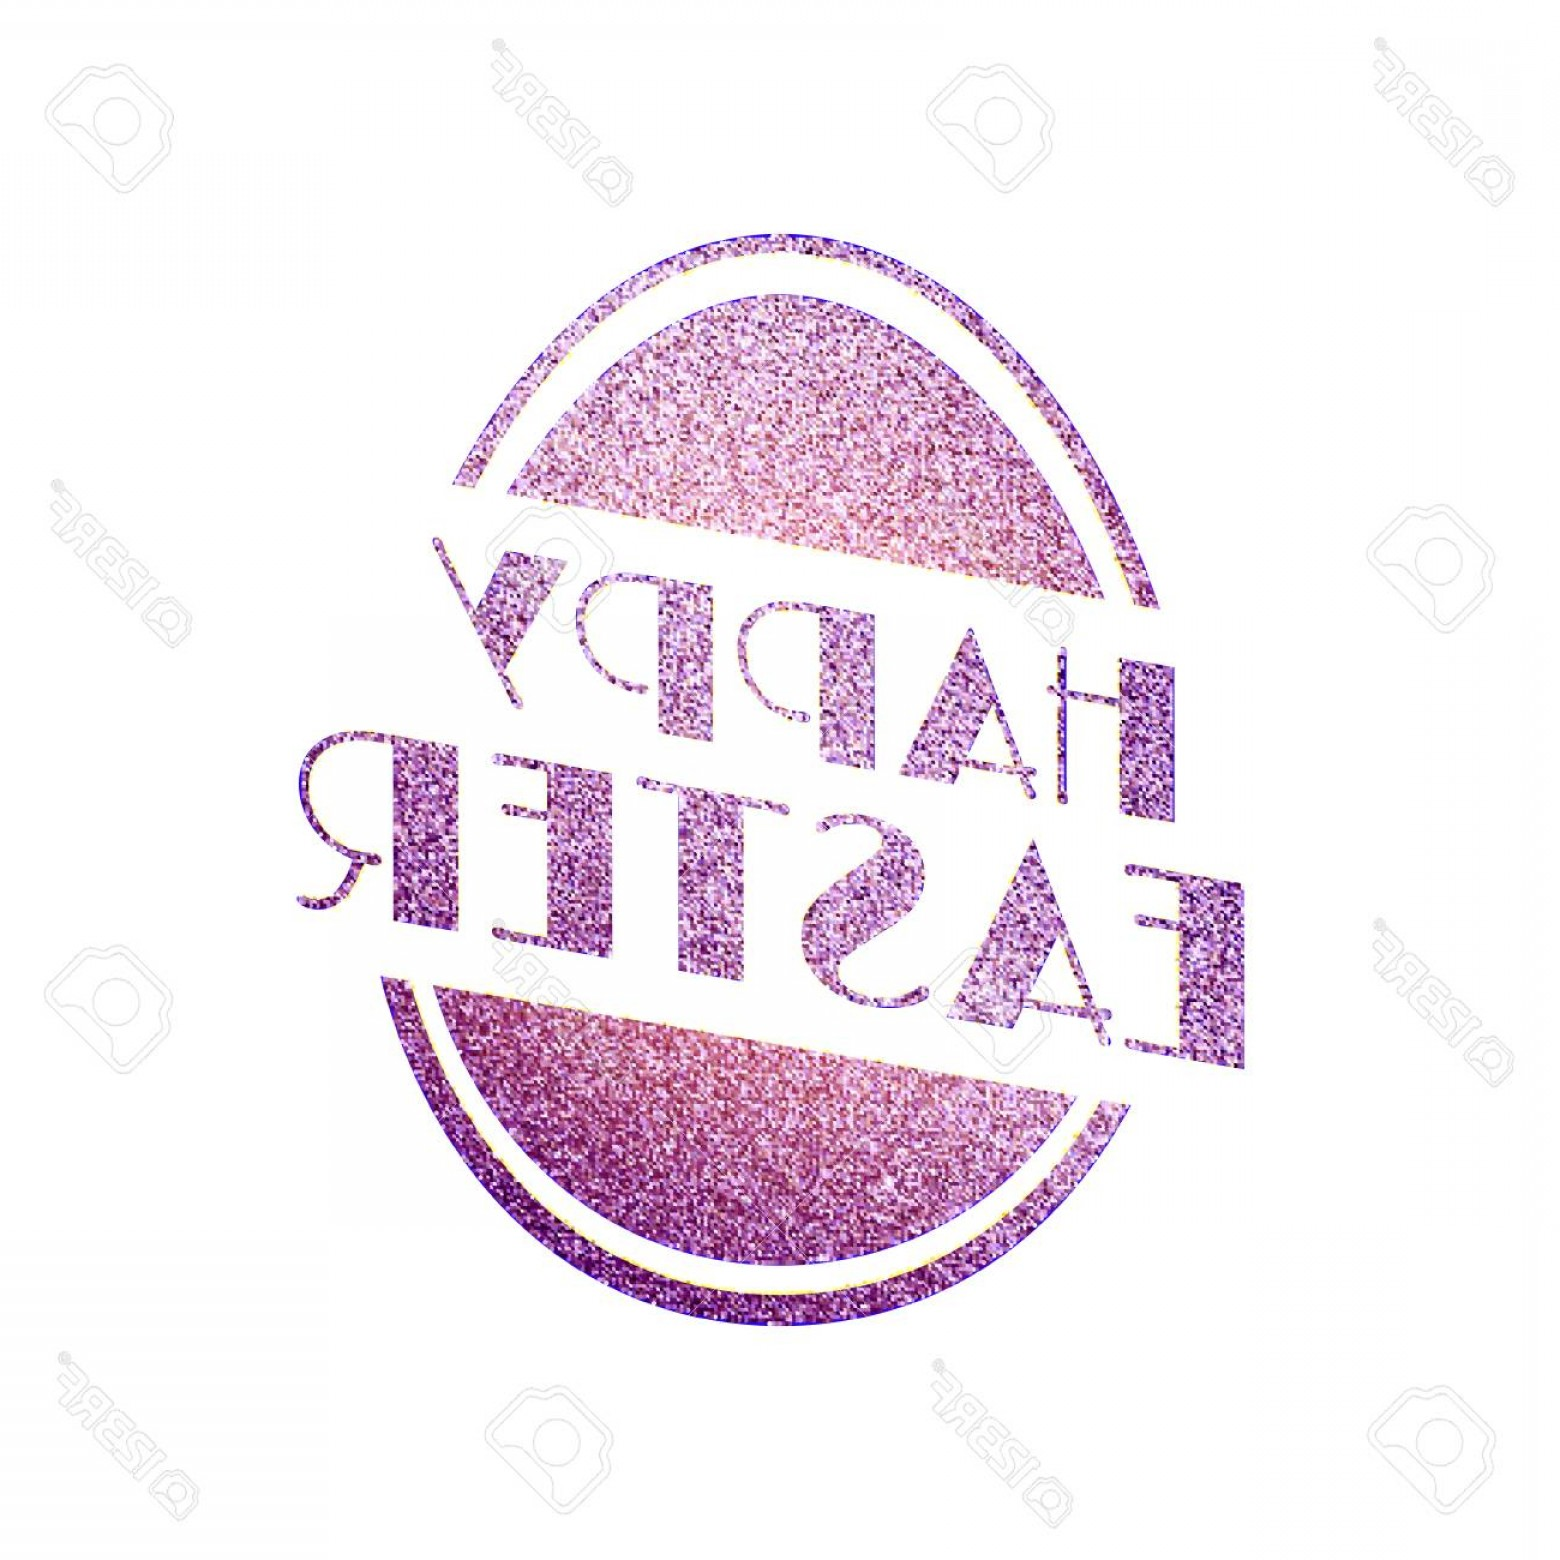 Religious Easter Vector Files: Photostock Vector Happy Easter Vector Holiday Illustration Of Easter Egg From Pink Shiny Metallic Texture Christian Re